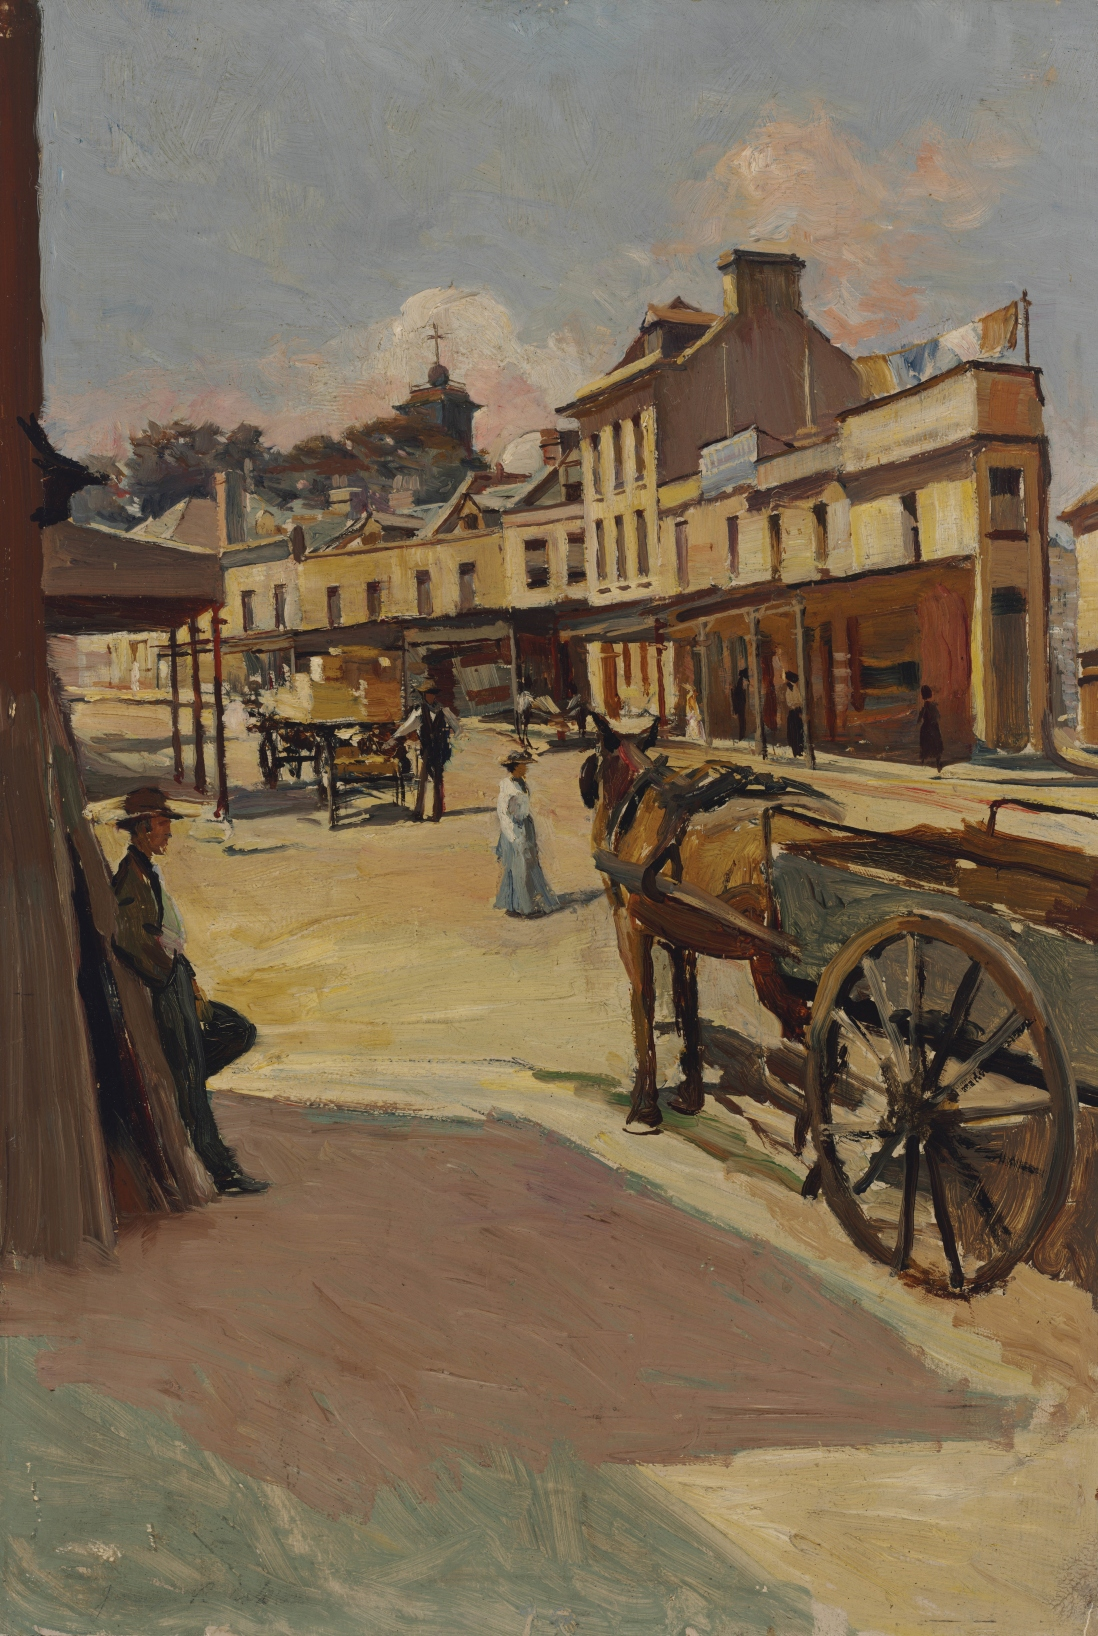 Painting of street scene. A harose and cart wait in the foreground and figures are shown going about their business in the shops shown in the painting's background.